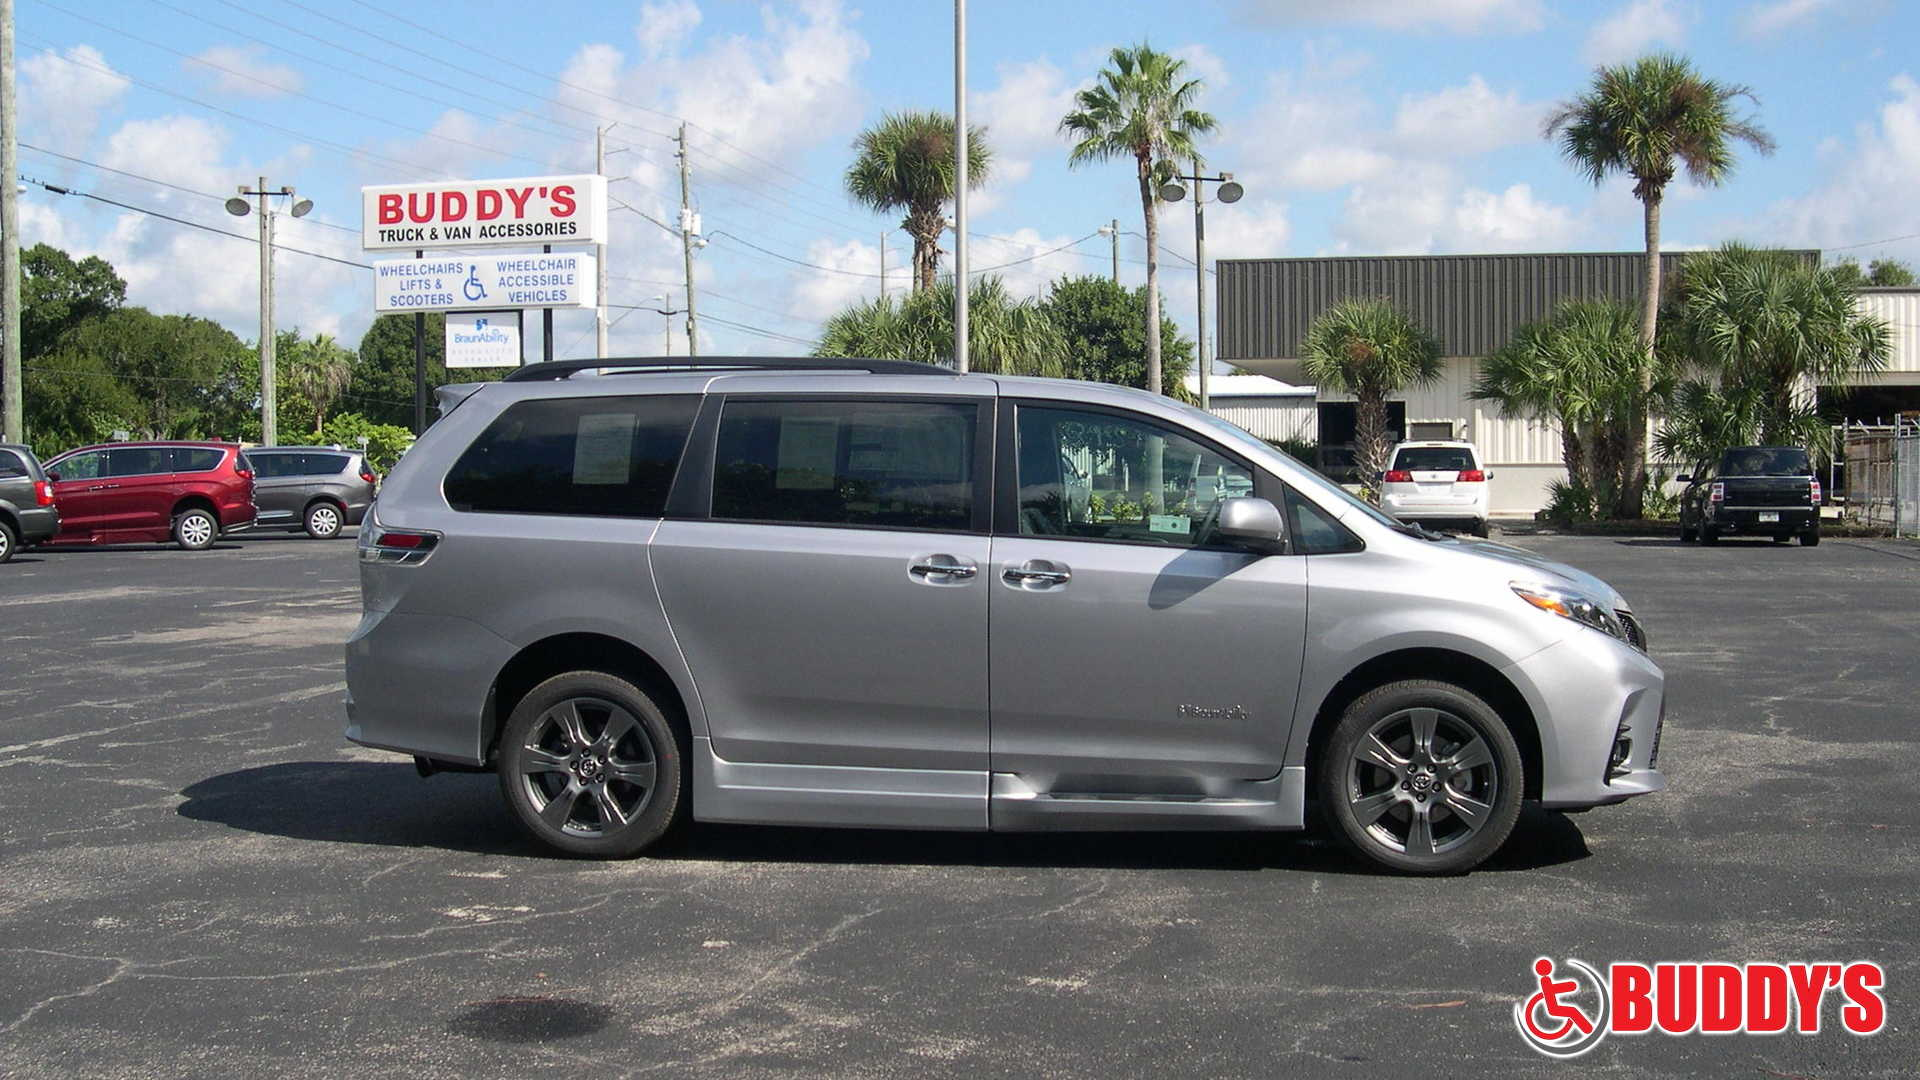 Toyota Sienna Service Manual: Vehicle lift and support locations